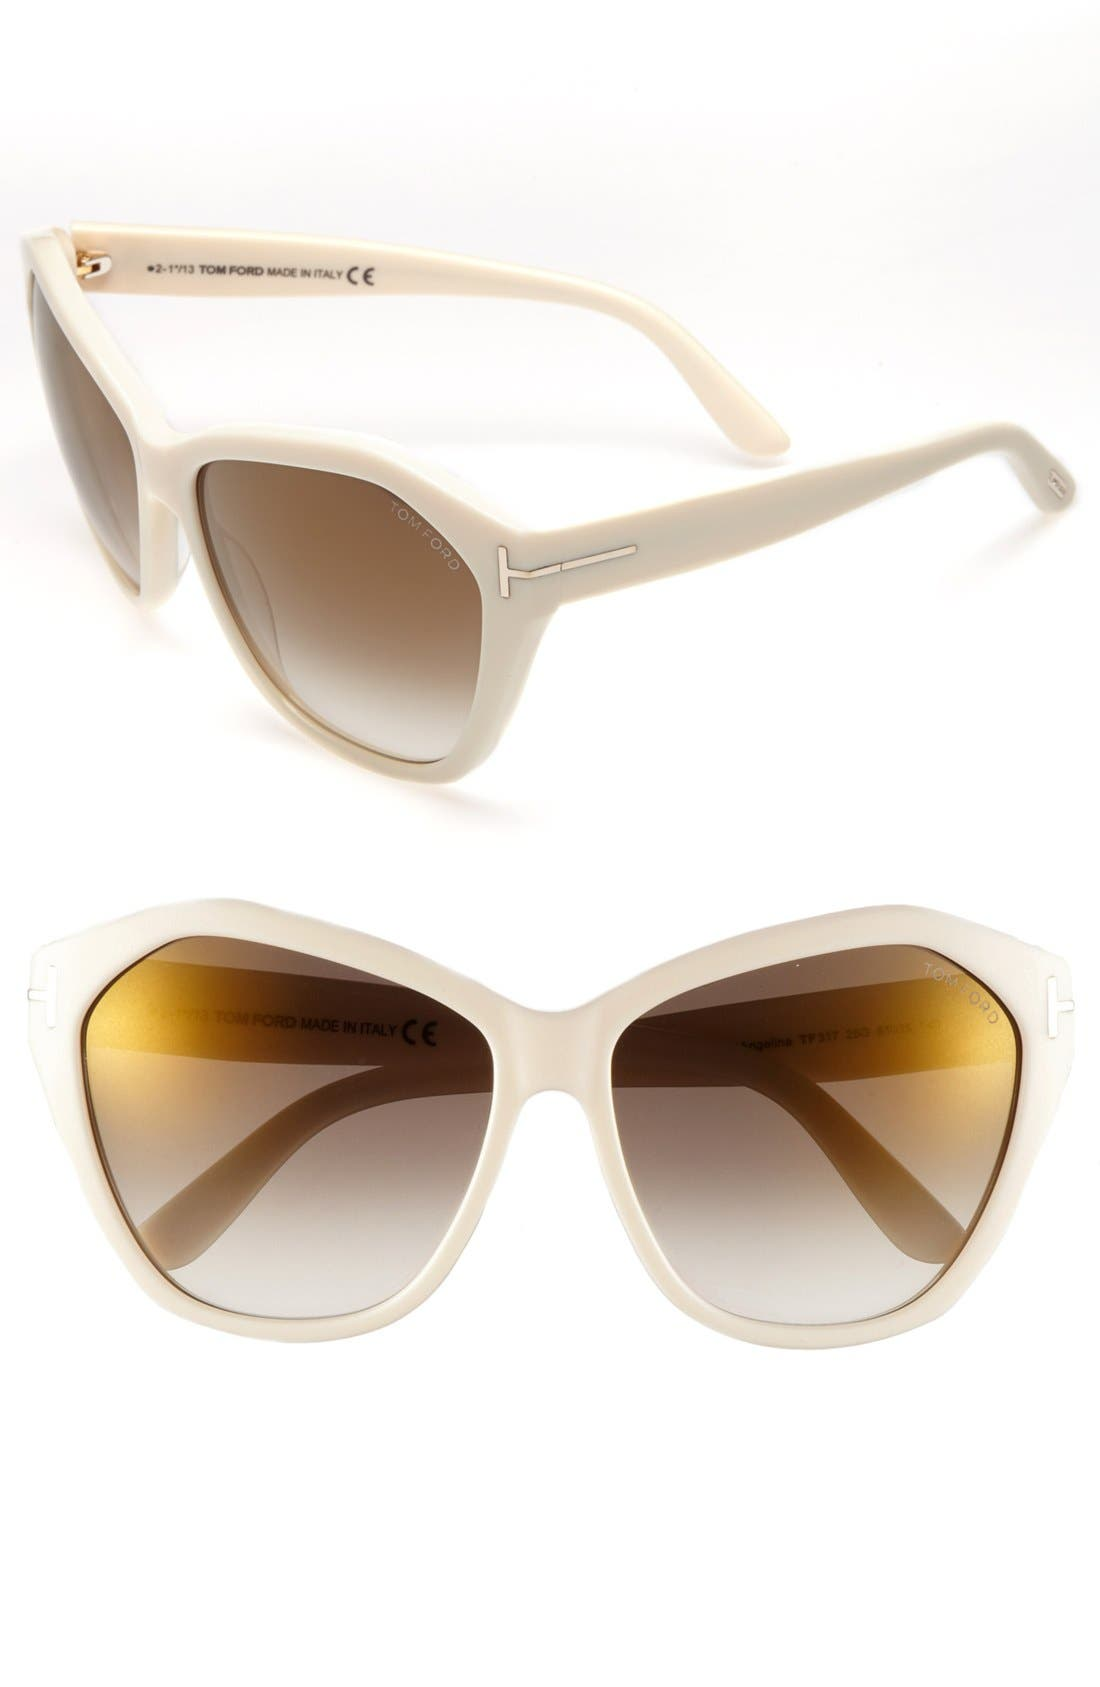 Main Image - Tom Ford 'Casandra' 61mm Sunglasses